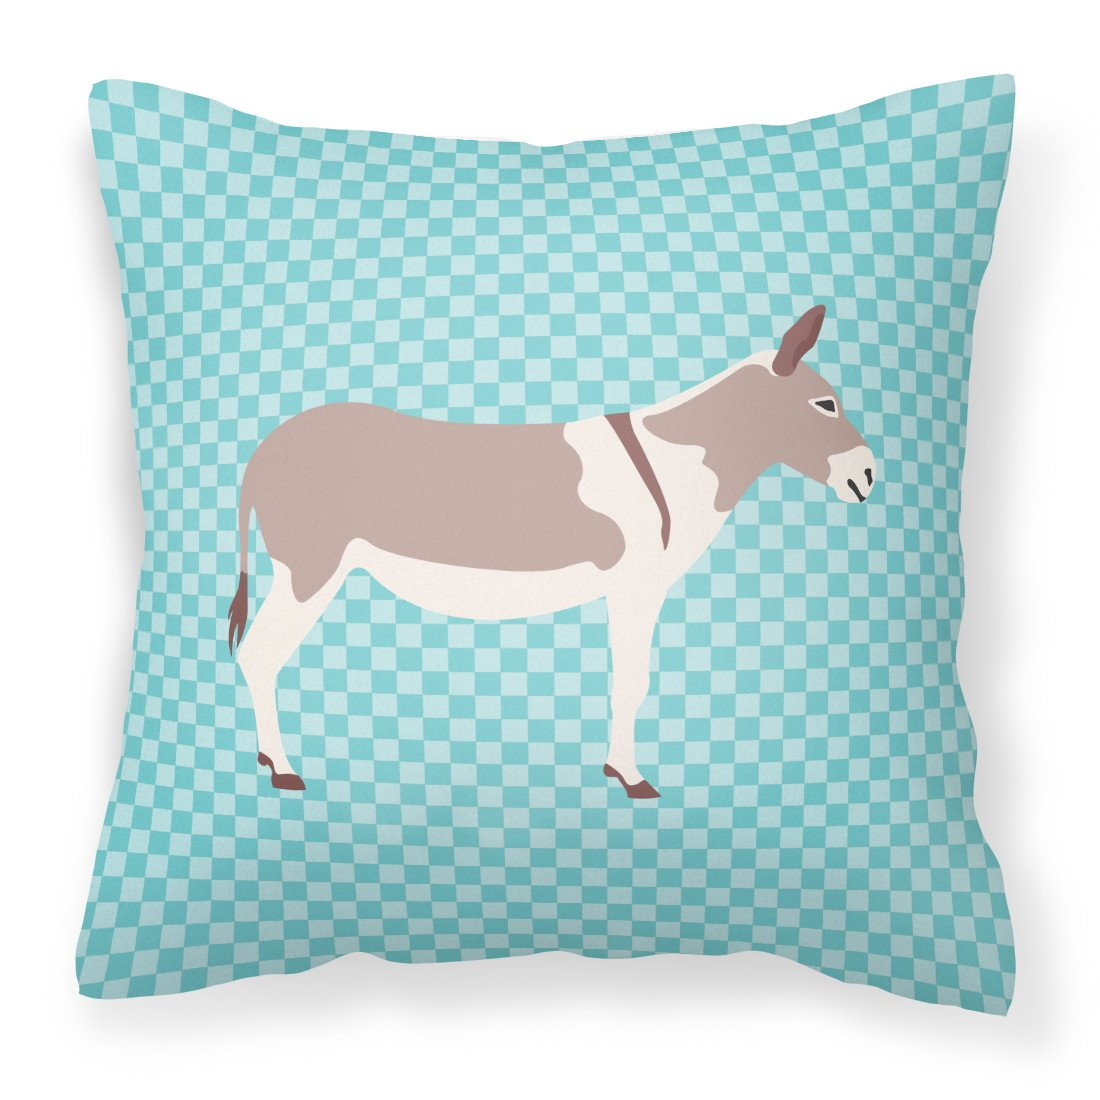 Australian Teamster Donkey Blue Check Fabric Decorative Pillow BB8020PW1818 by Caroline's Treasures